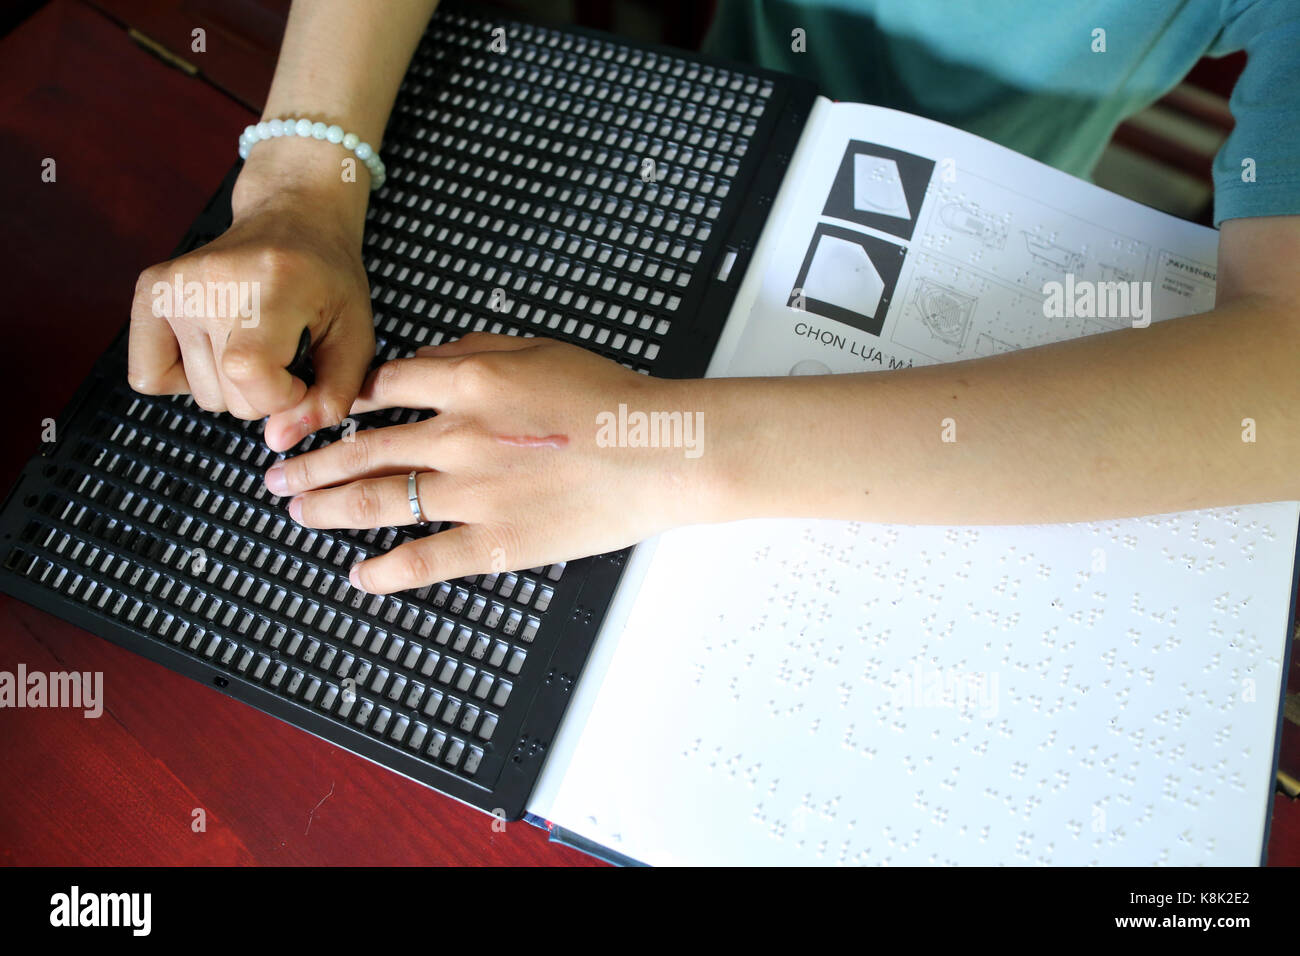 Hands And Braille Writing Stock Photos & Hands And Braille Writing ...